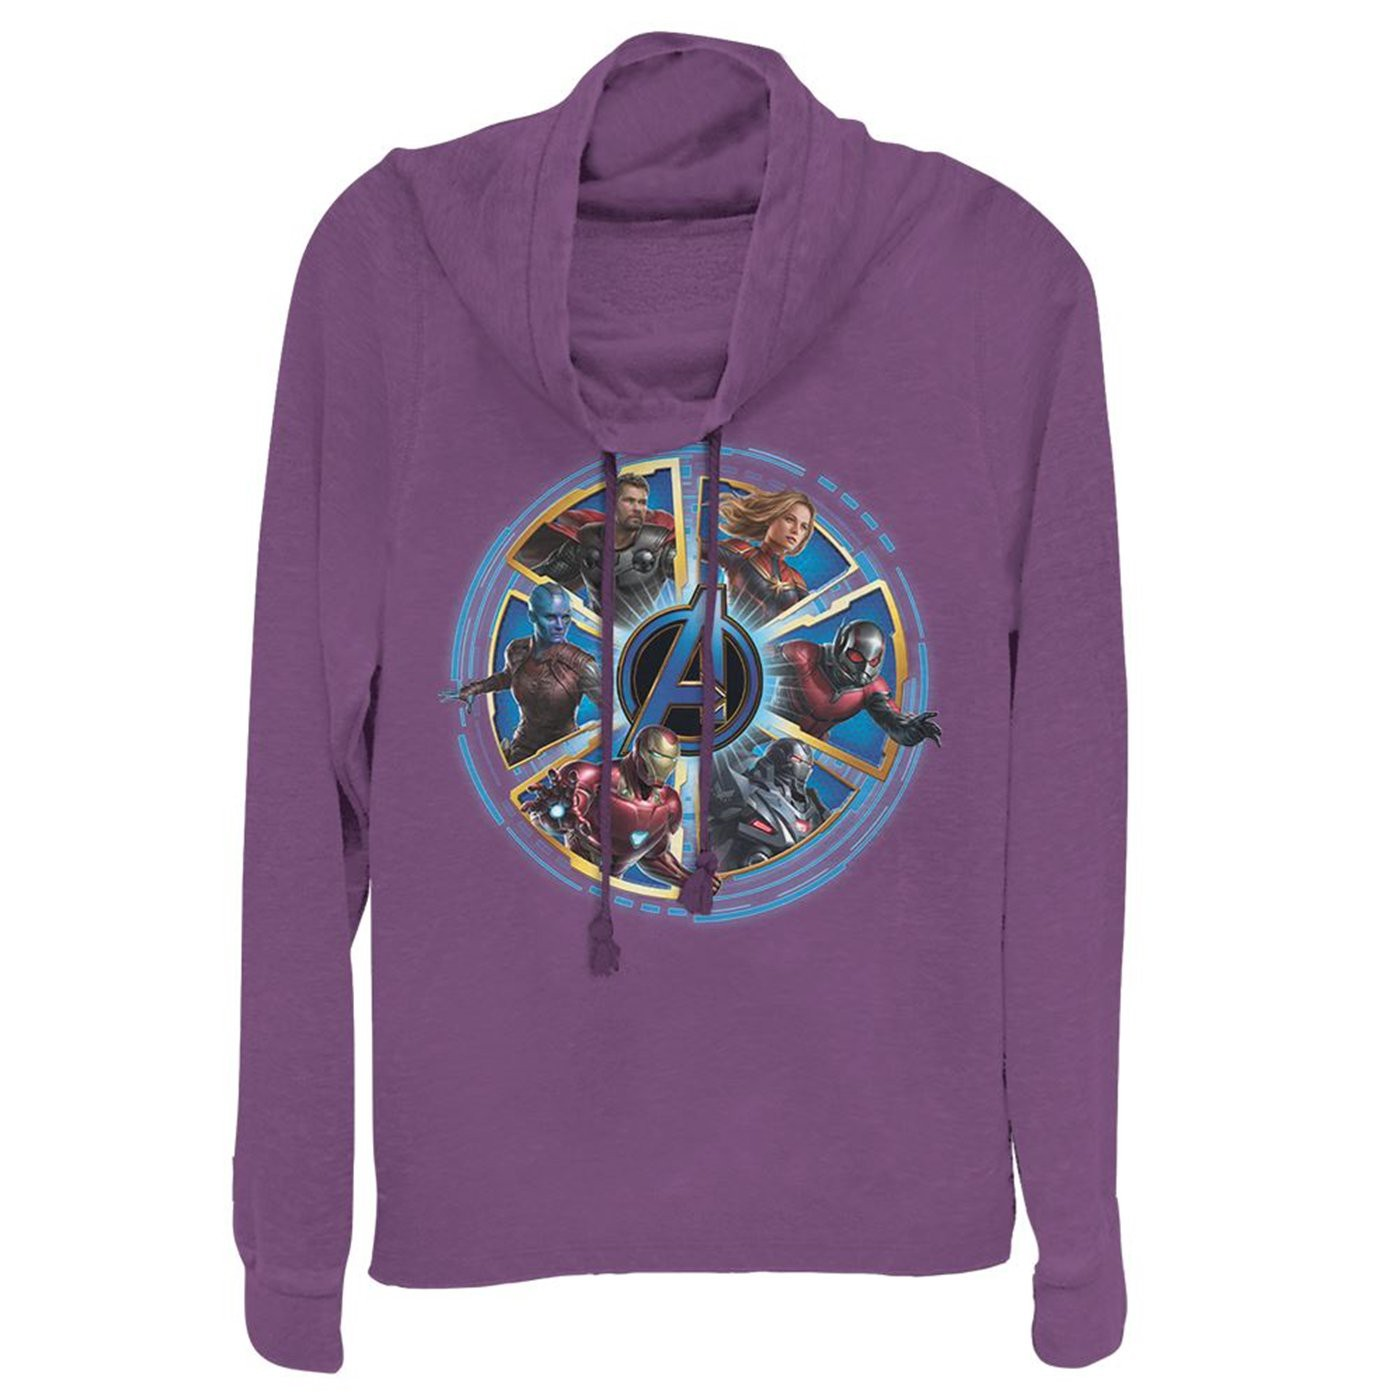 Avengers Endgame Heroes Circle Women's Cowl Neck Sweater